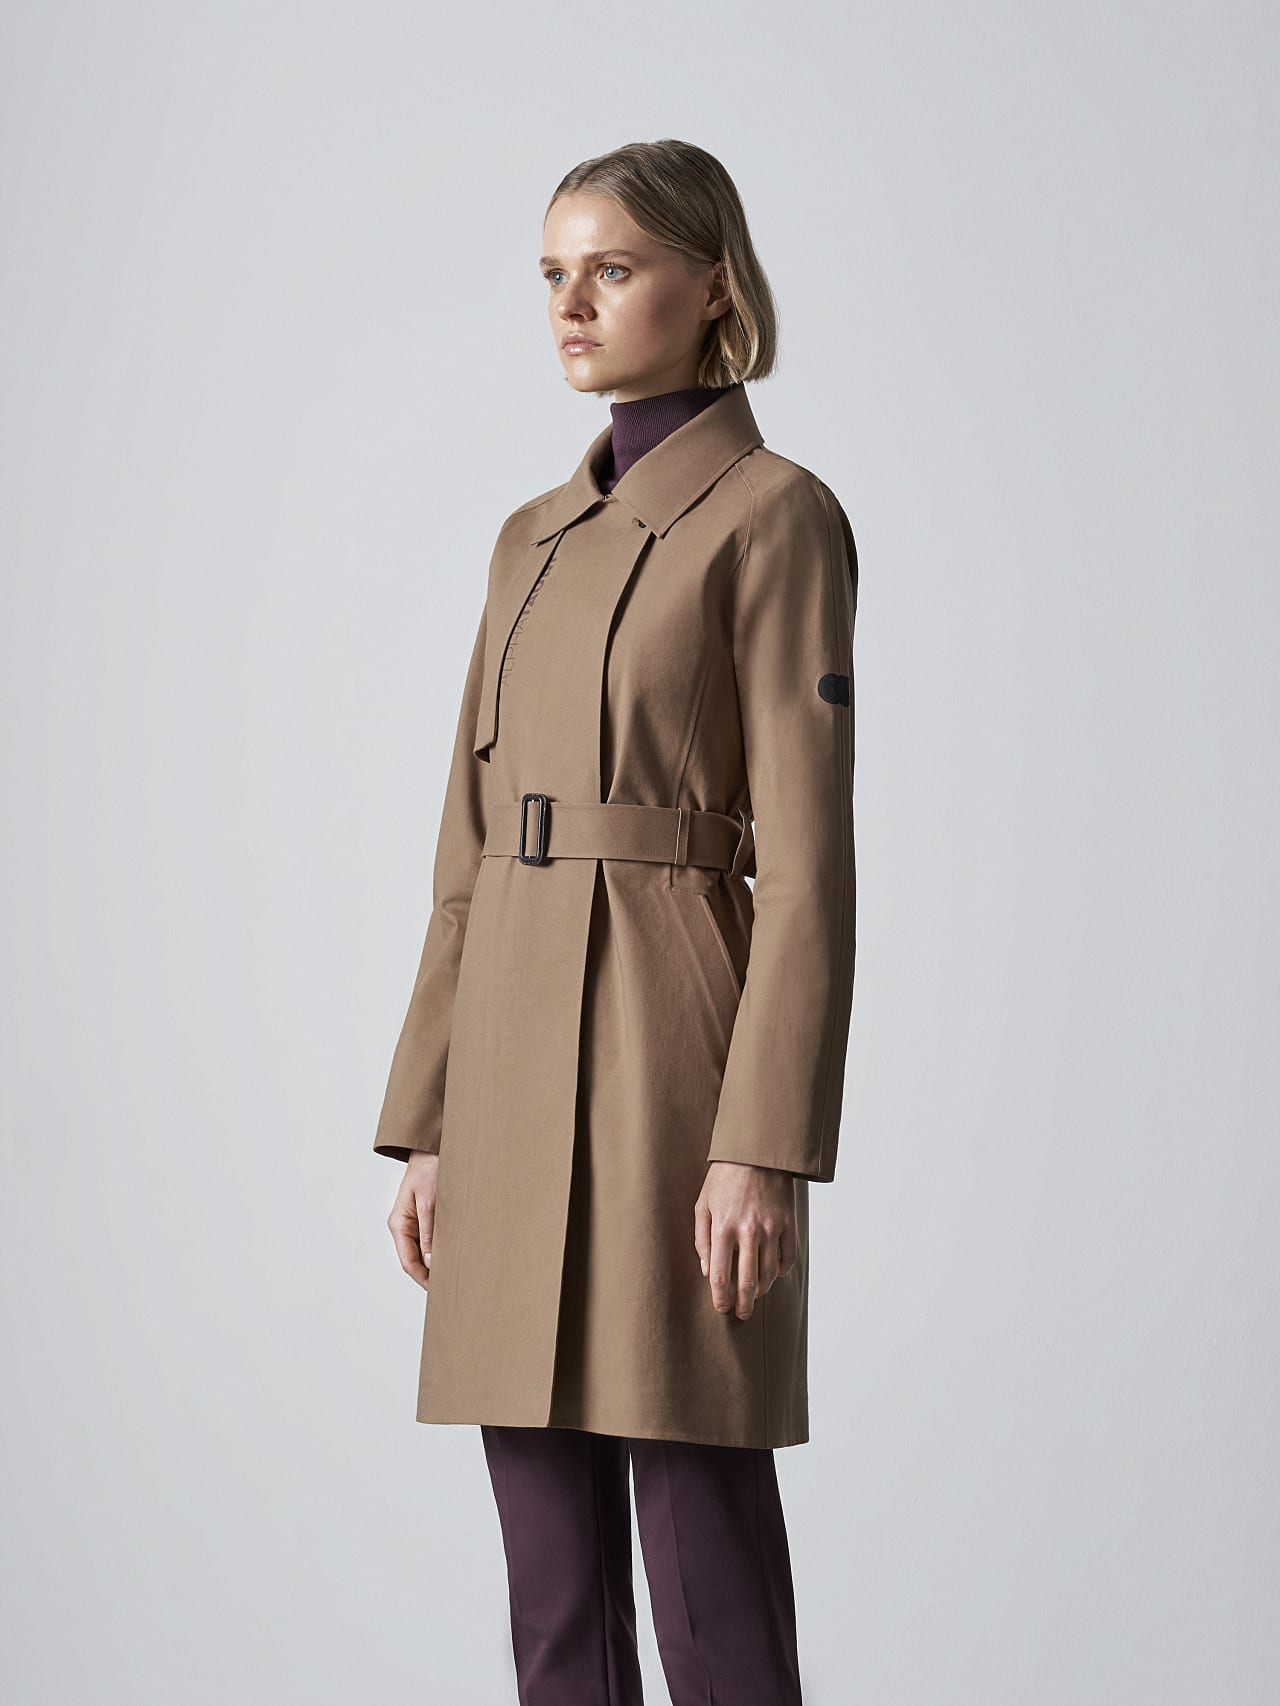 OMANI V1.Y5.02 Packable and Waterproof Trench Coat gold Model shot Alpha Tauri